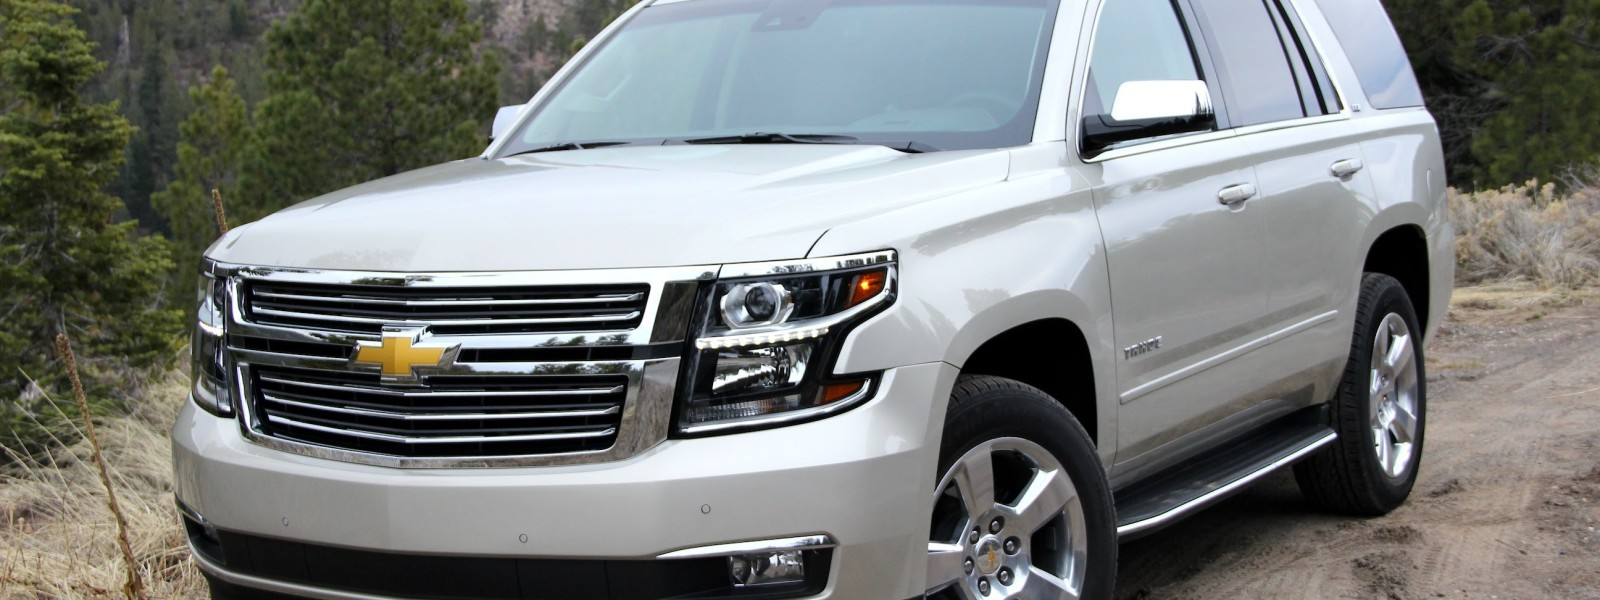 2015 Chevrolet Tahoe LTZ Review